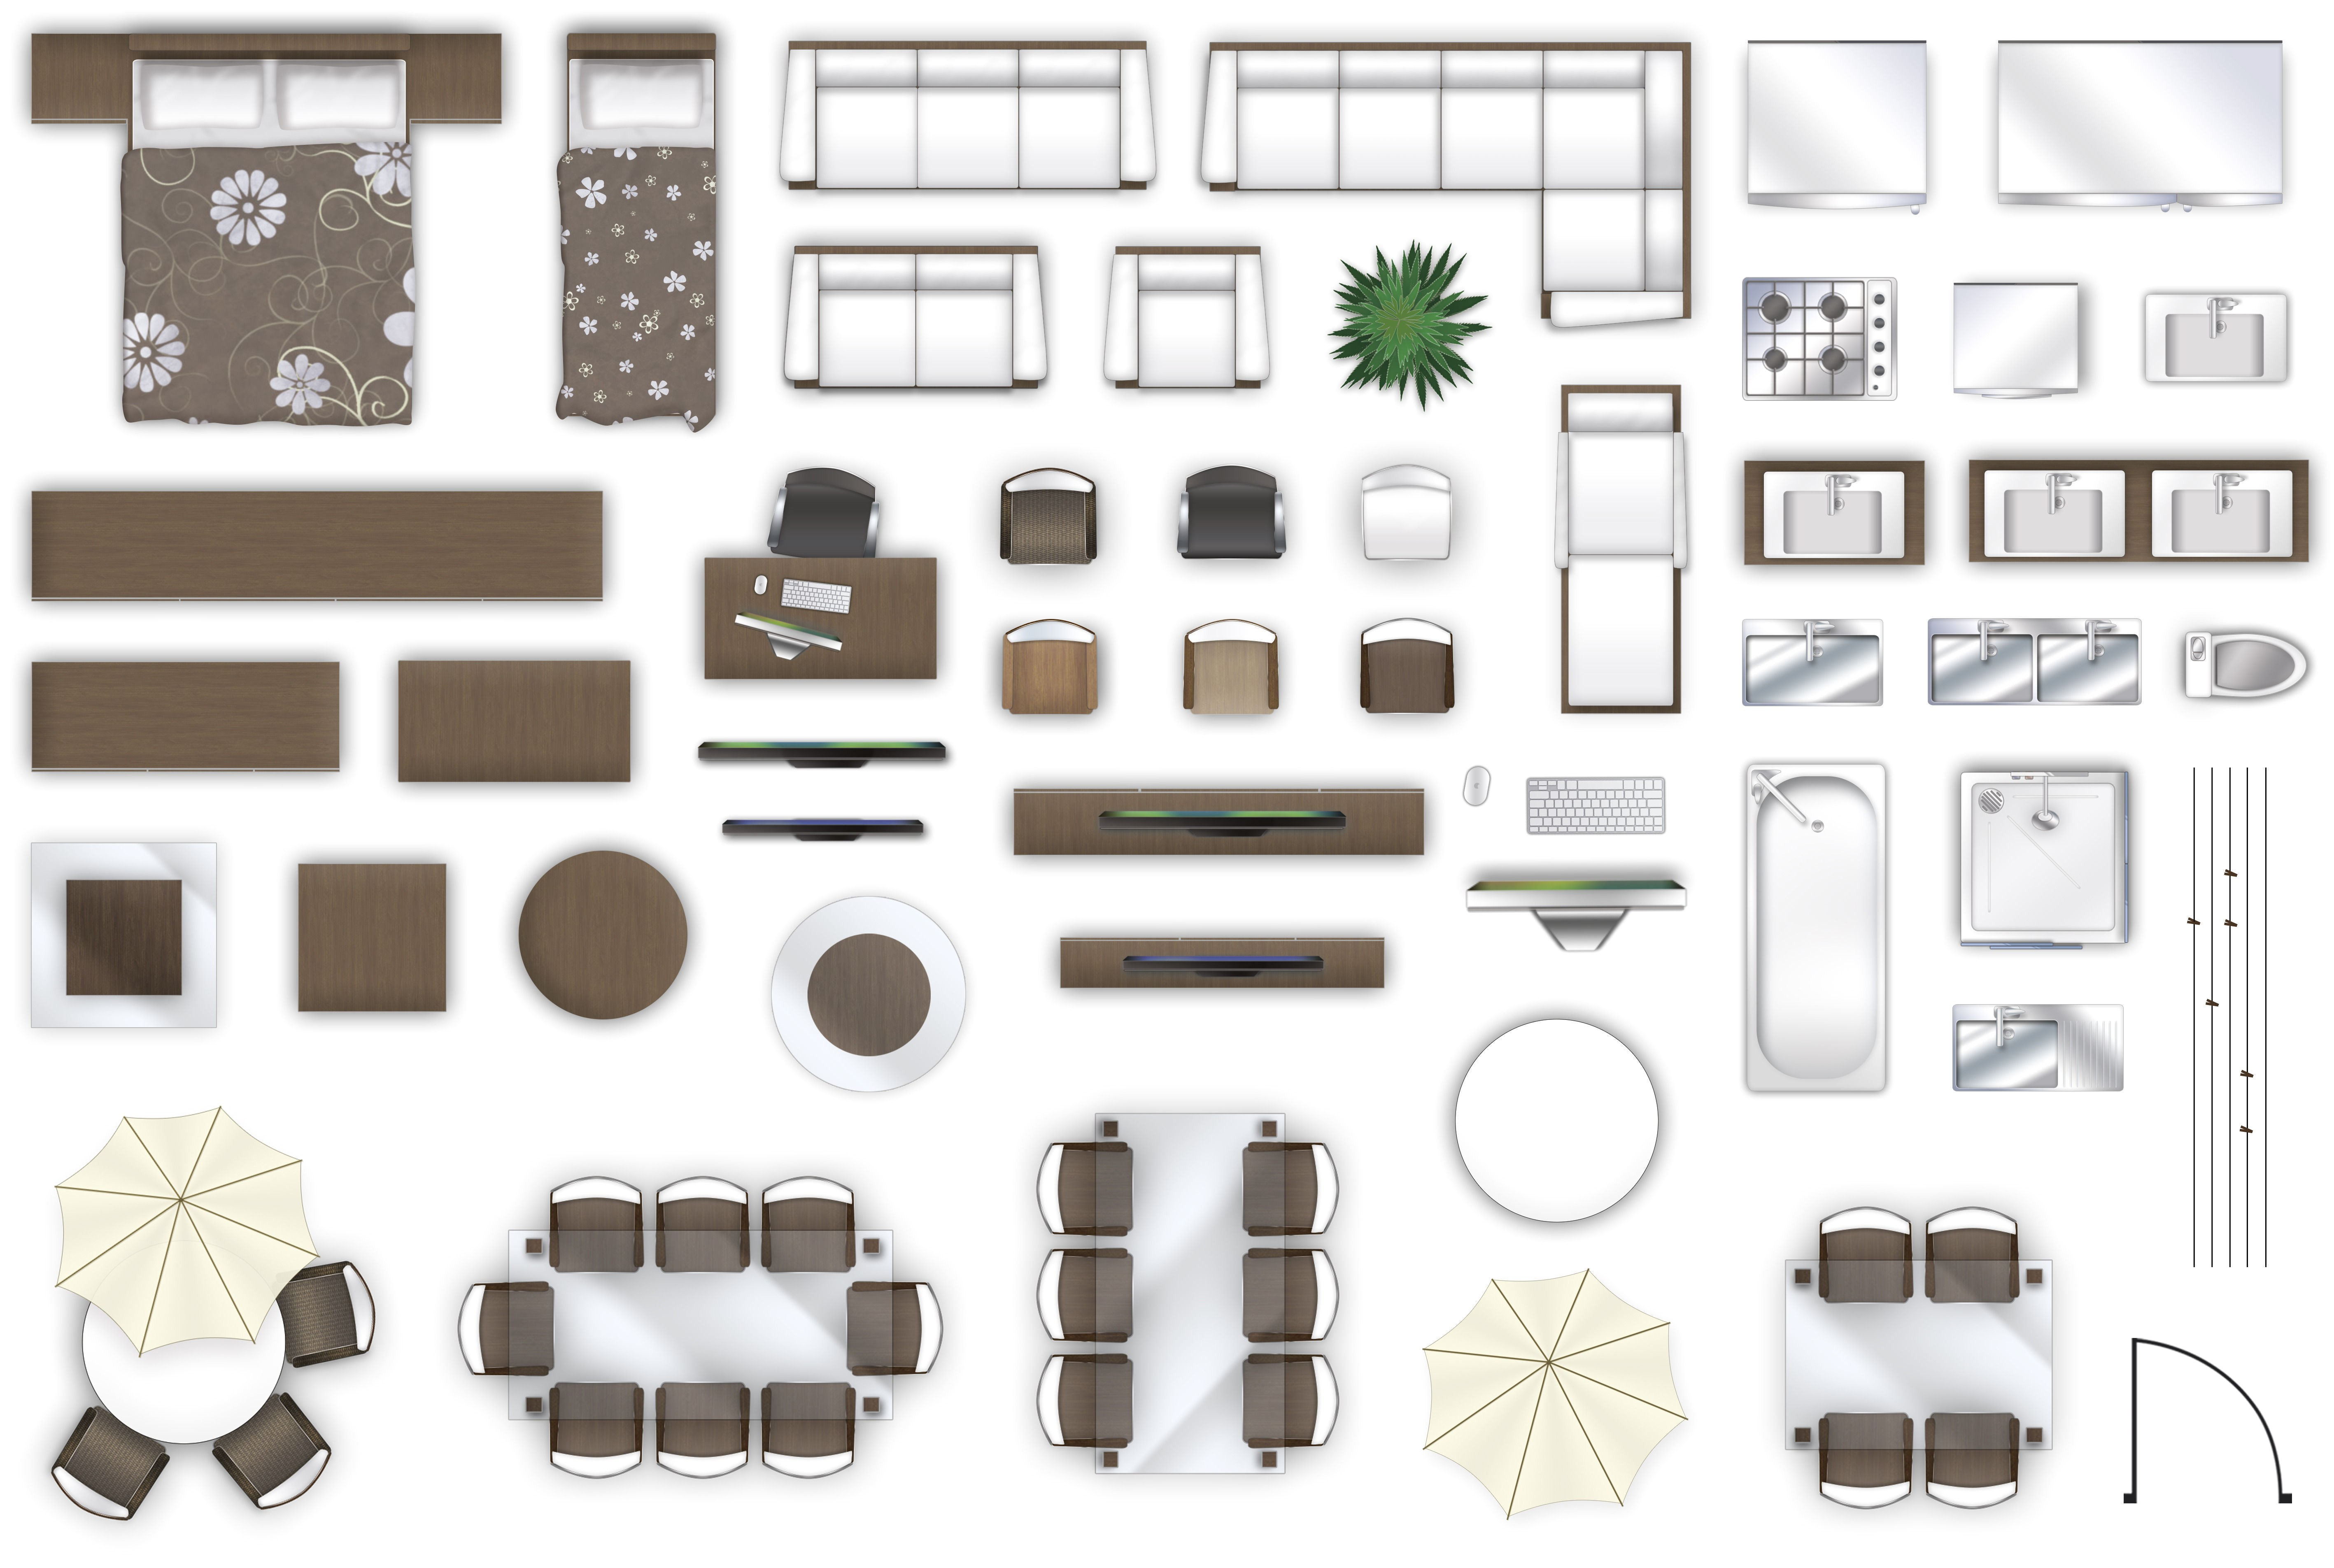 2d furniture floorplan top down view style 3 psd